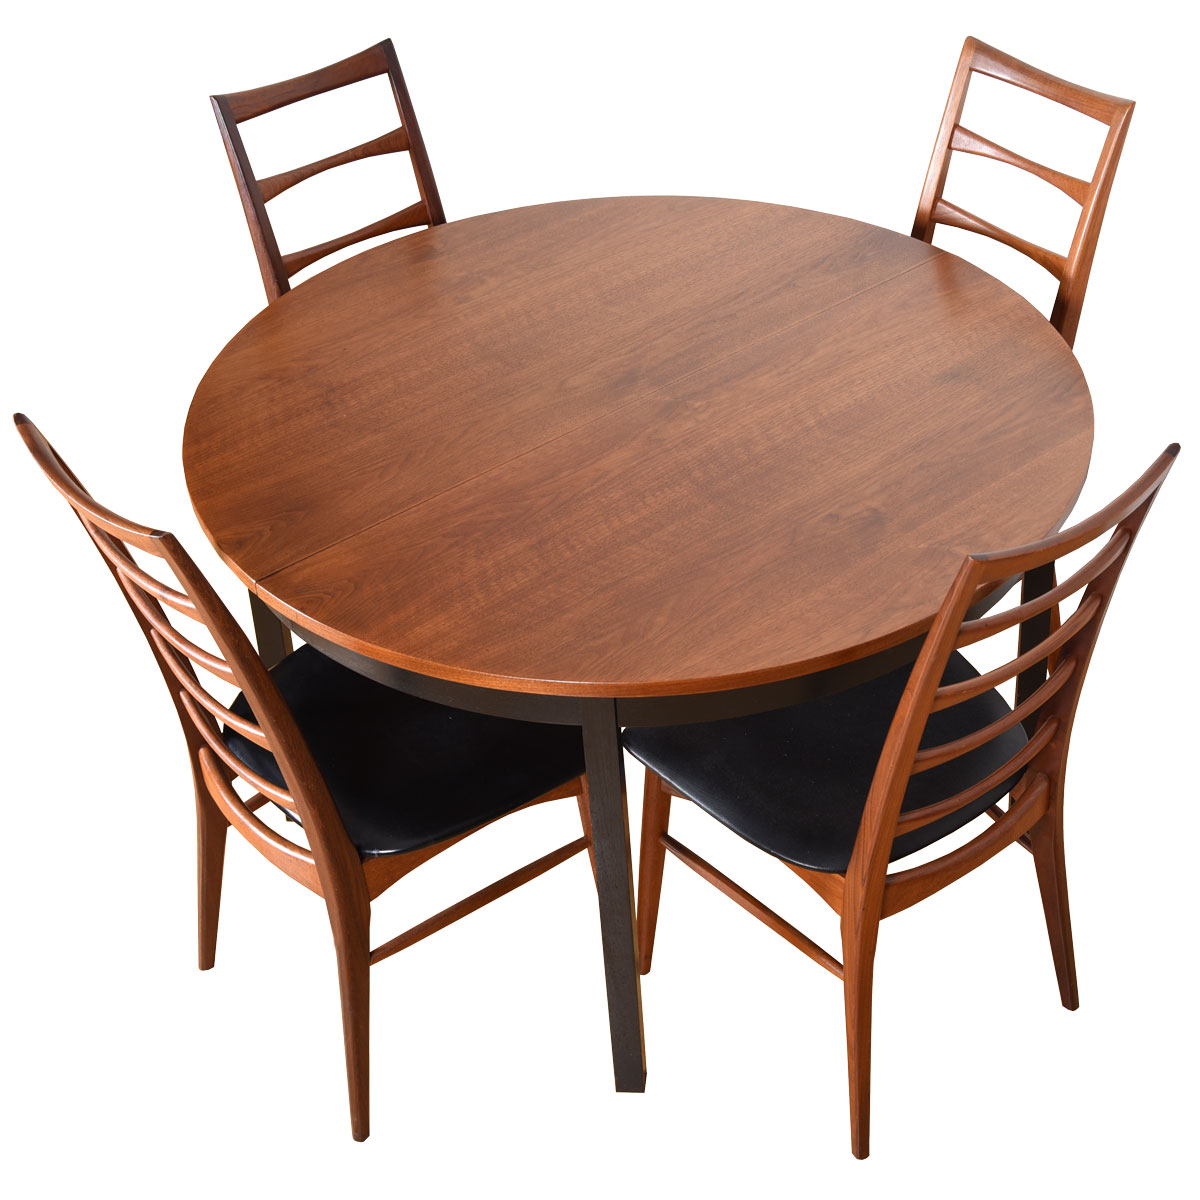 American Modernist Round to Oval Expanding Walnut Table Top + Ebonized Legs